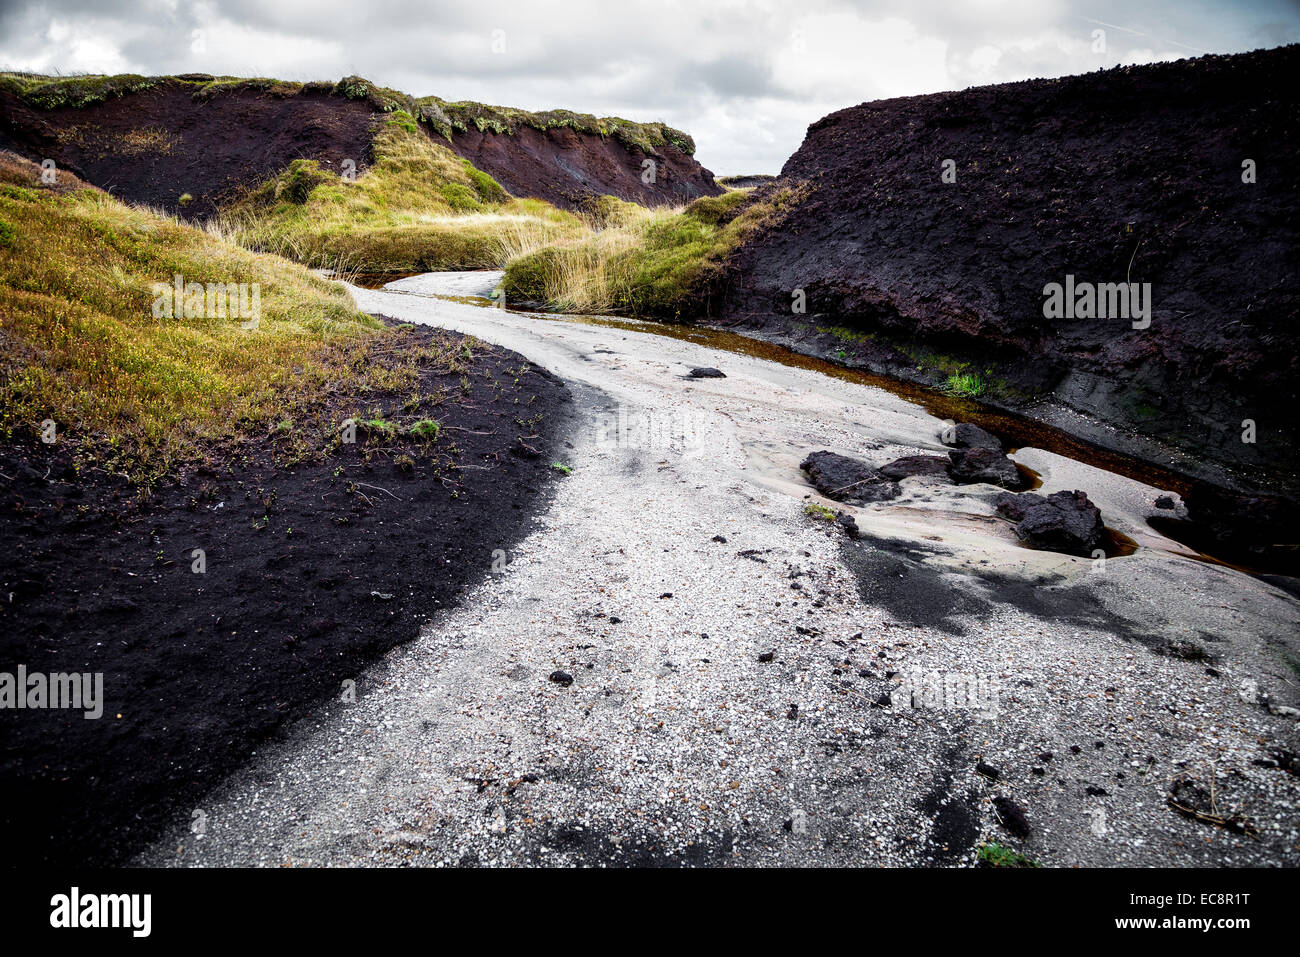 Peat haggs and groughs eroded down to the quartz rich millstone grit by river action on the Kinder plateau in Derbyshire - Stock Image